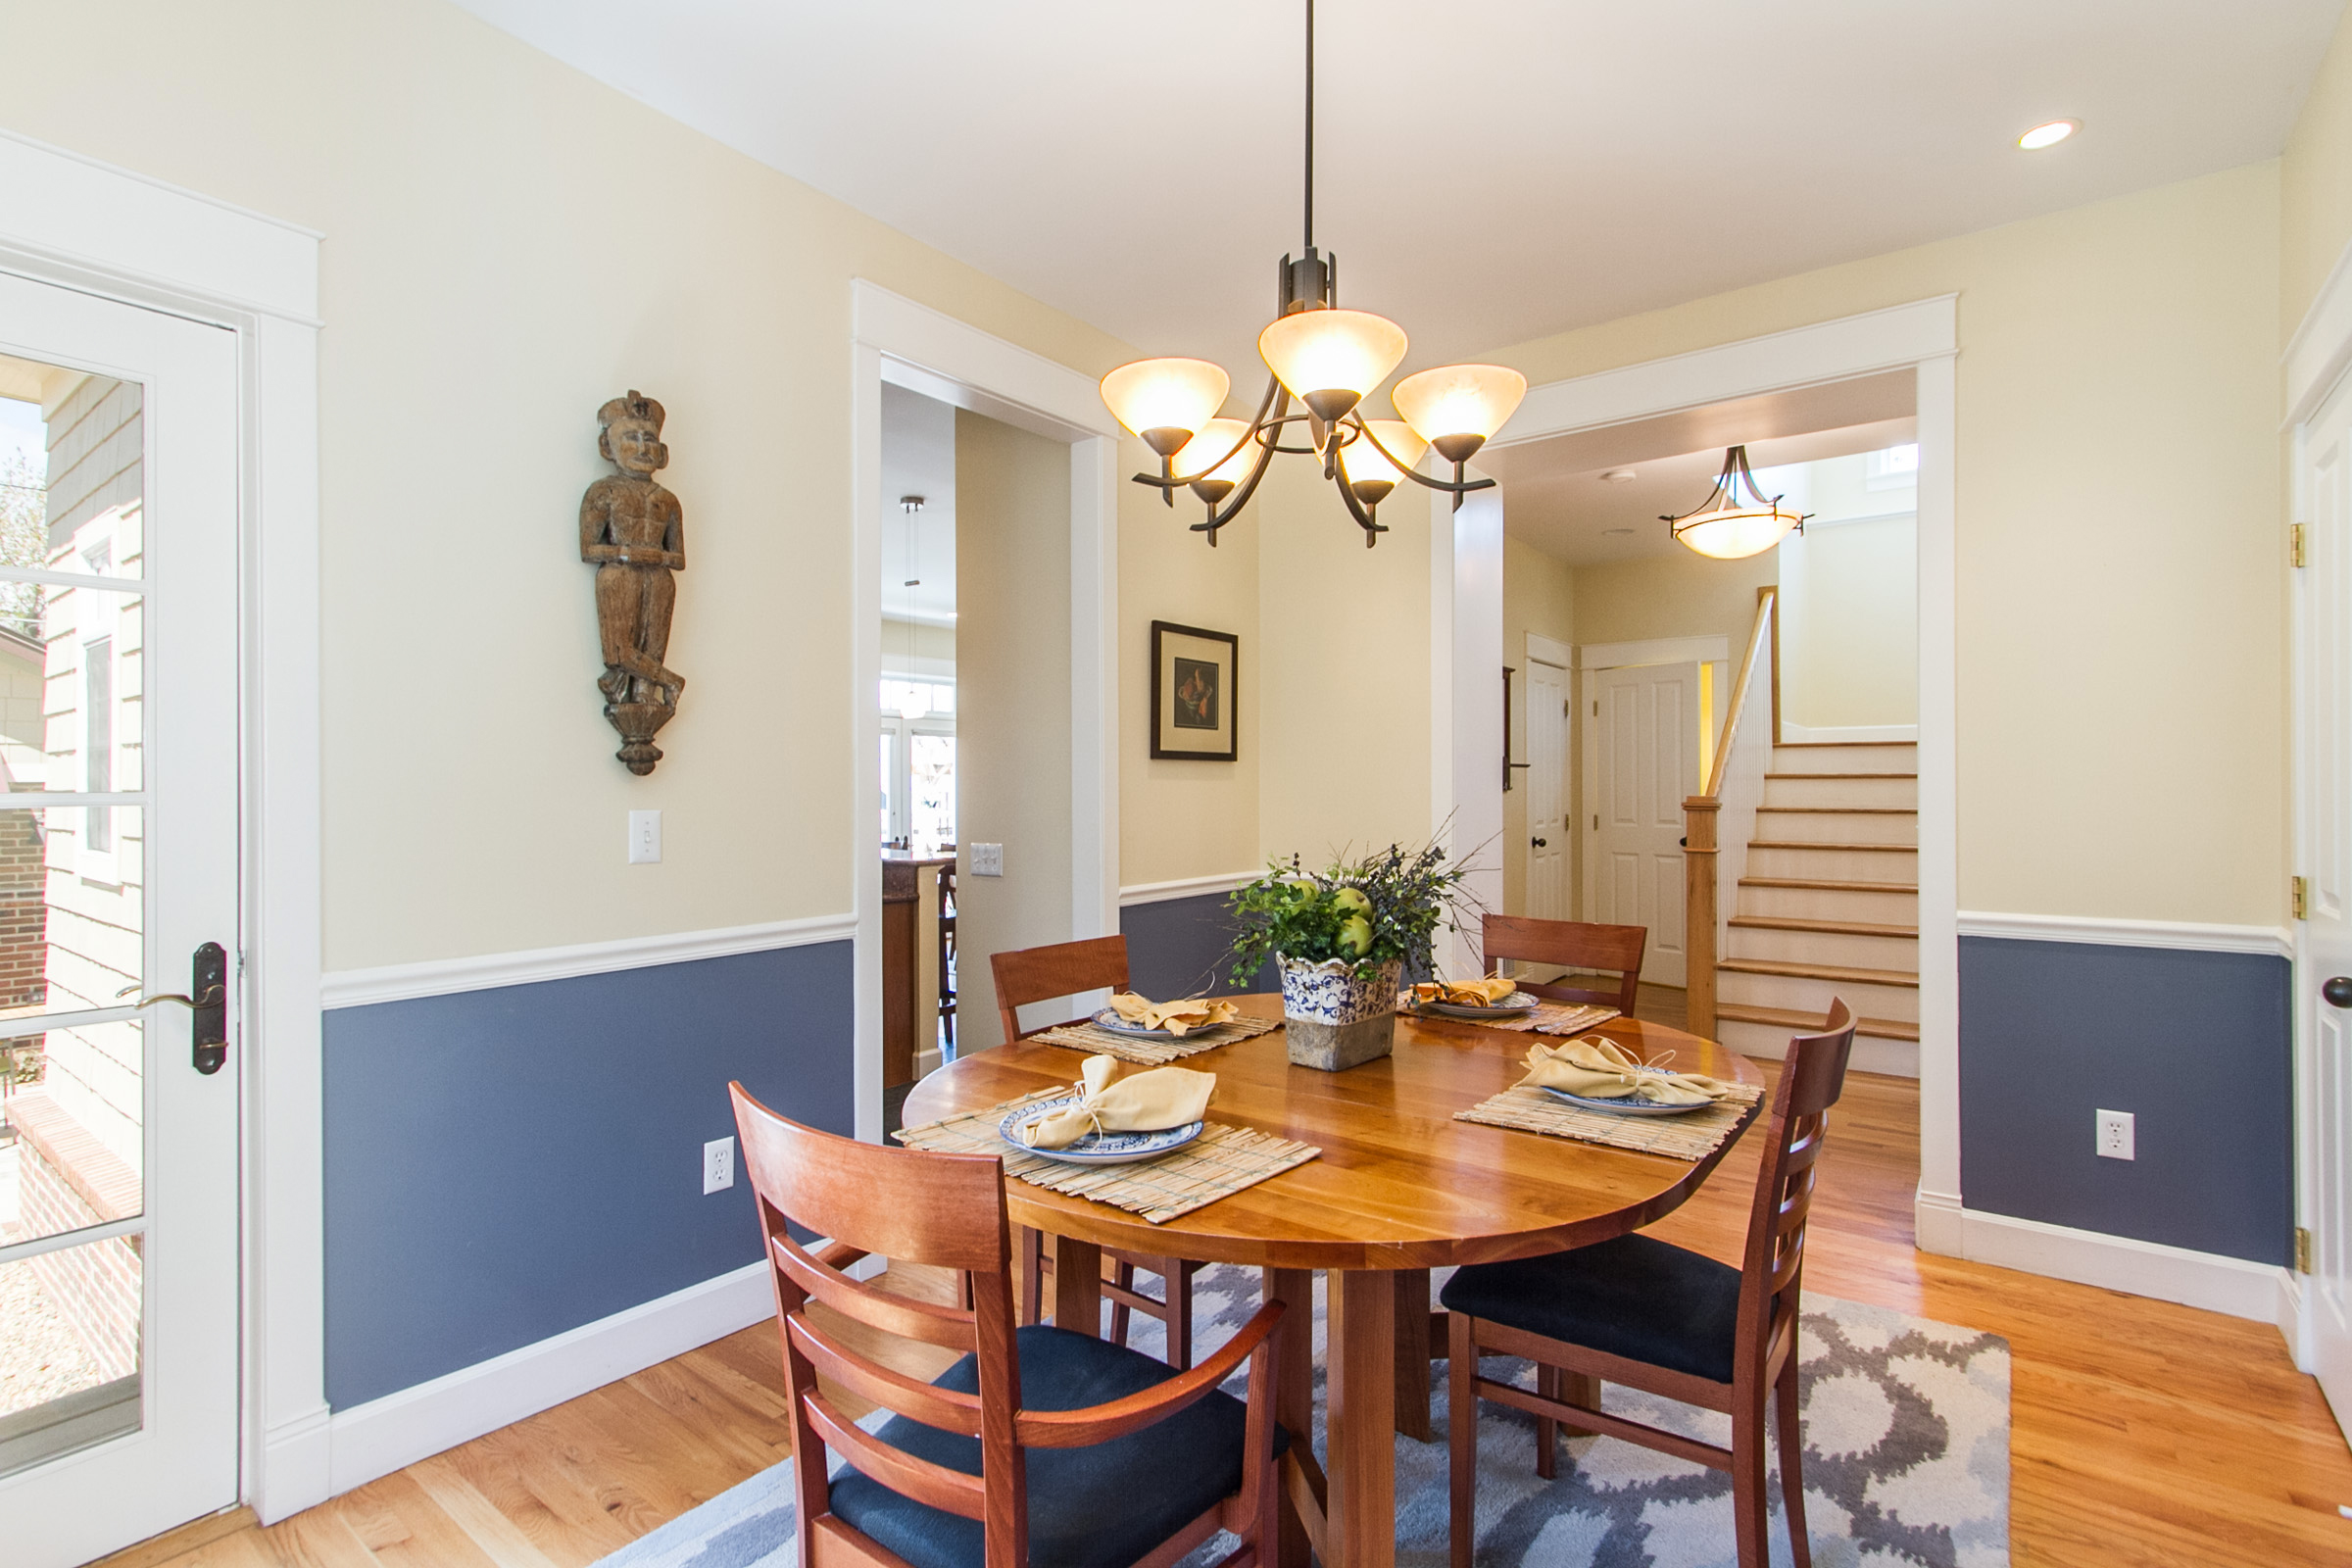 1246068_Dining-Room-Has-View-Of-Main-Staircase_high.jpg